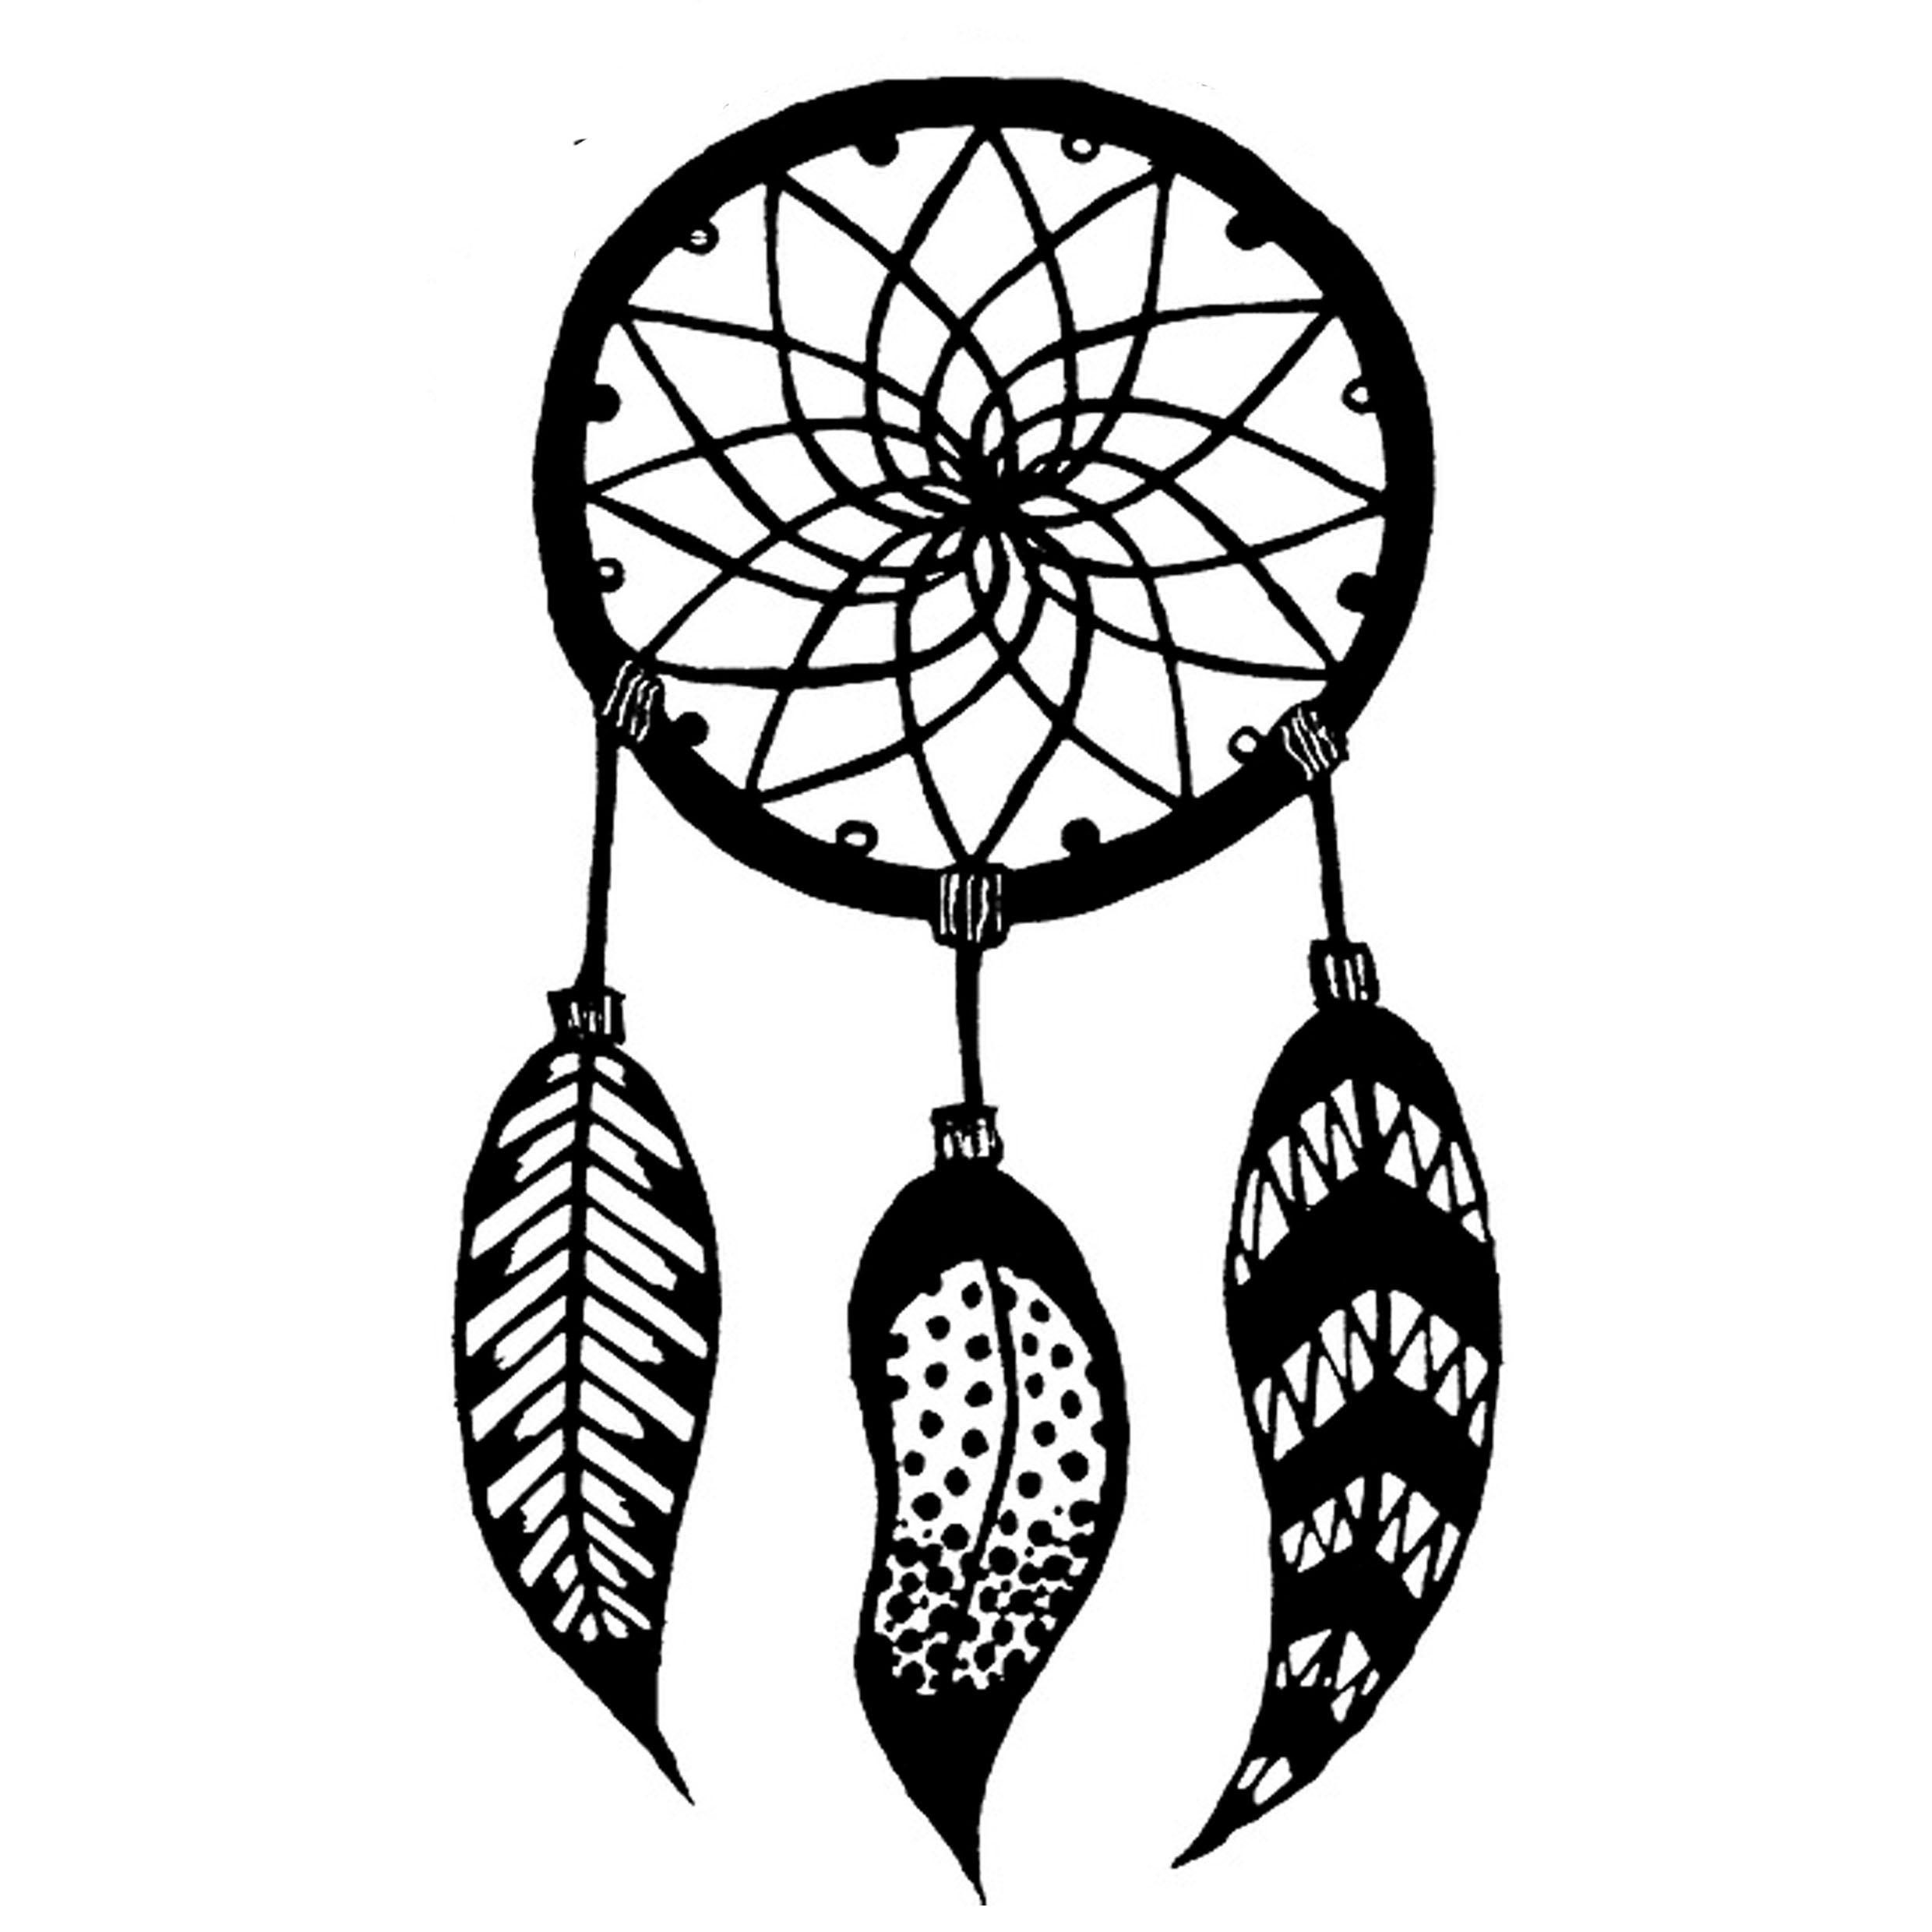 2480x2480 Image Result For Dreamcatcher Drawing Dreamcatchers